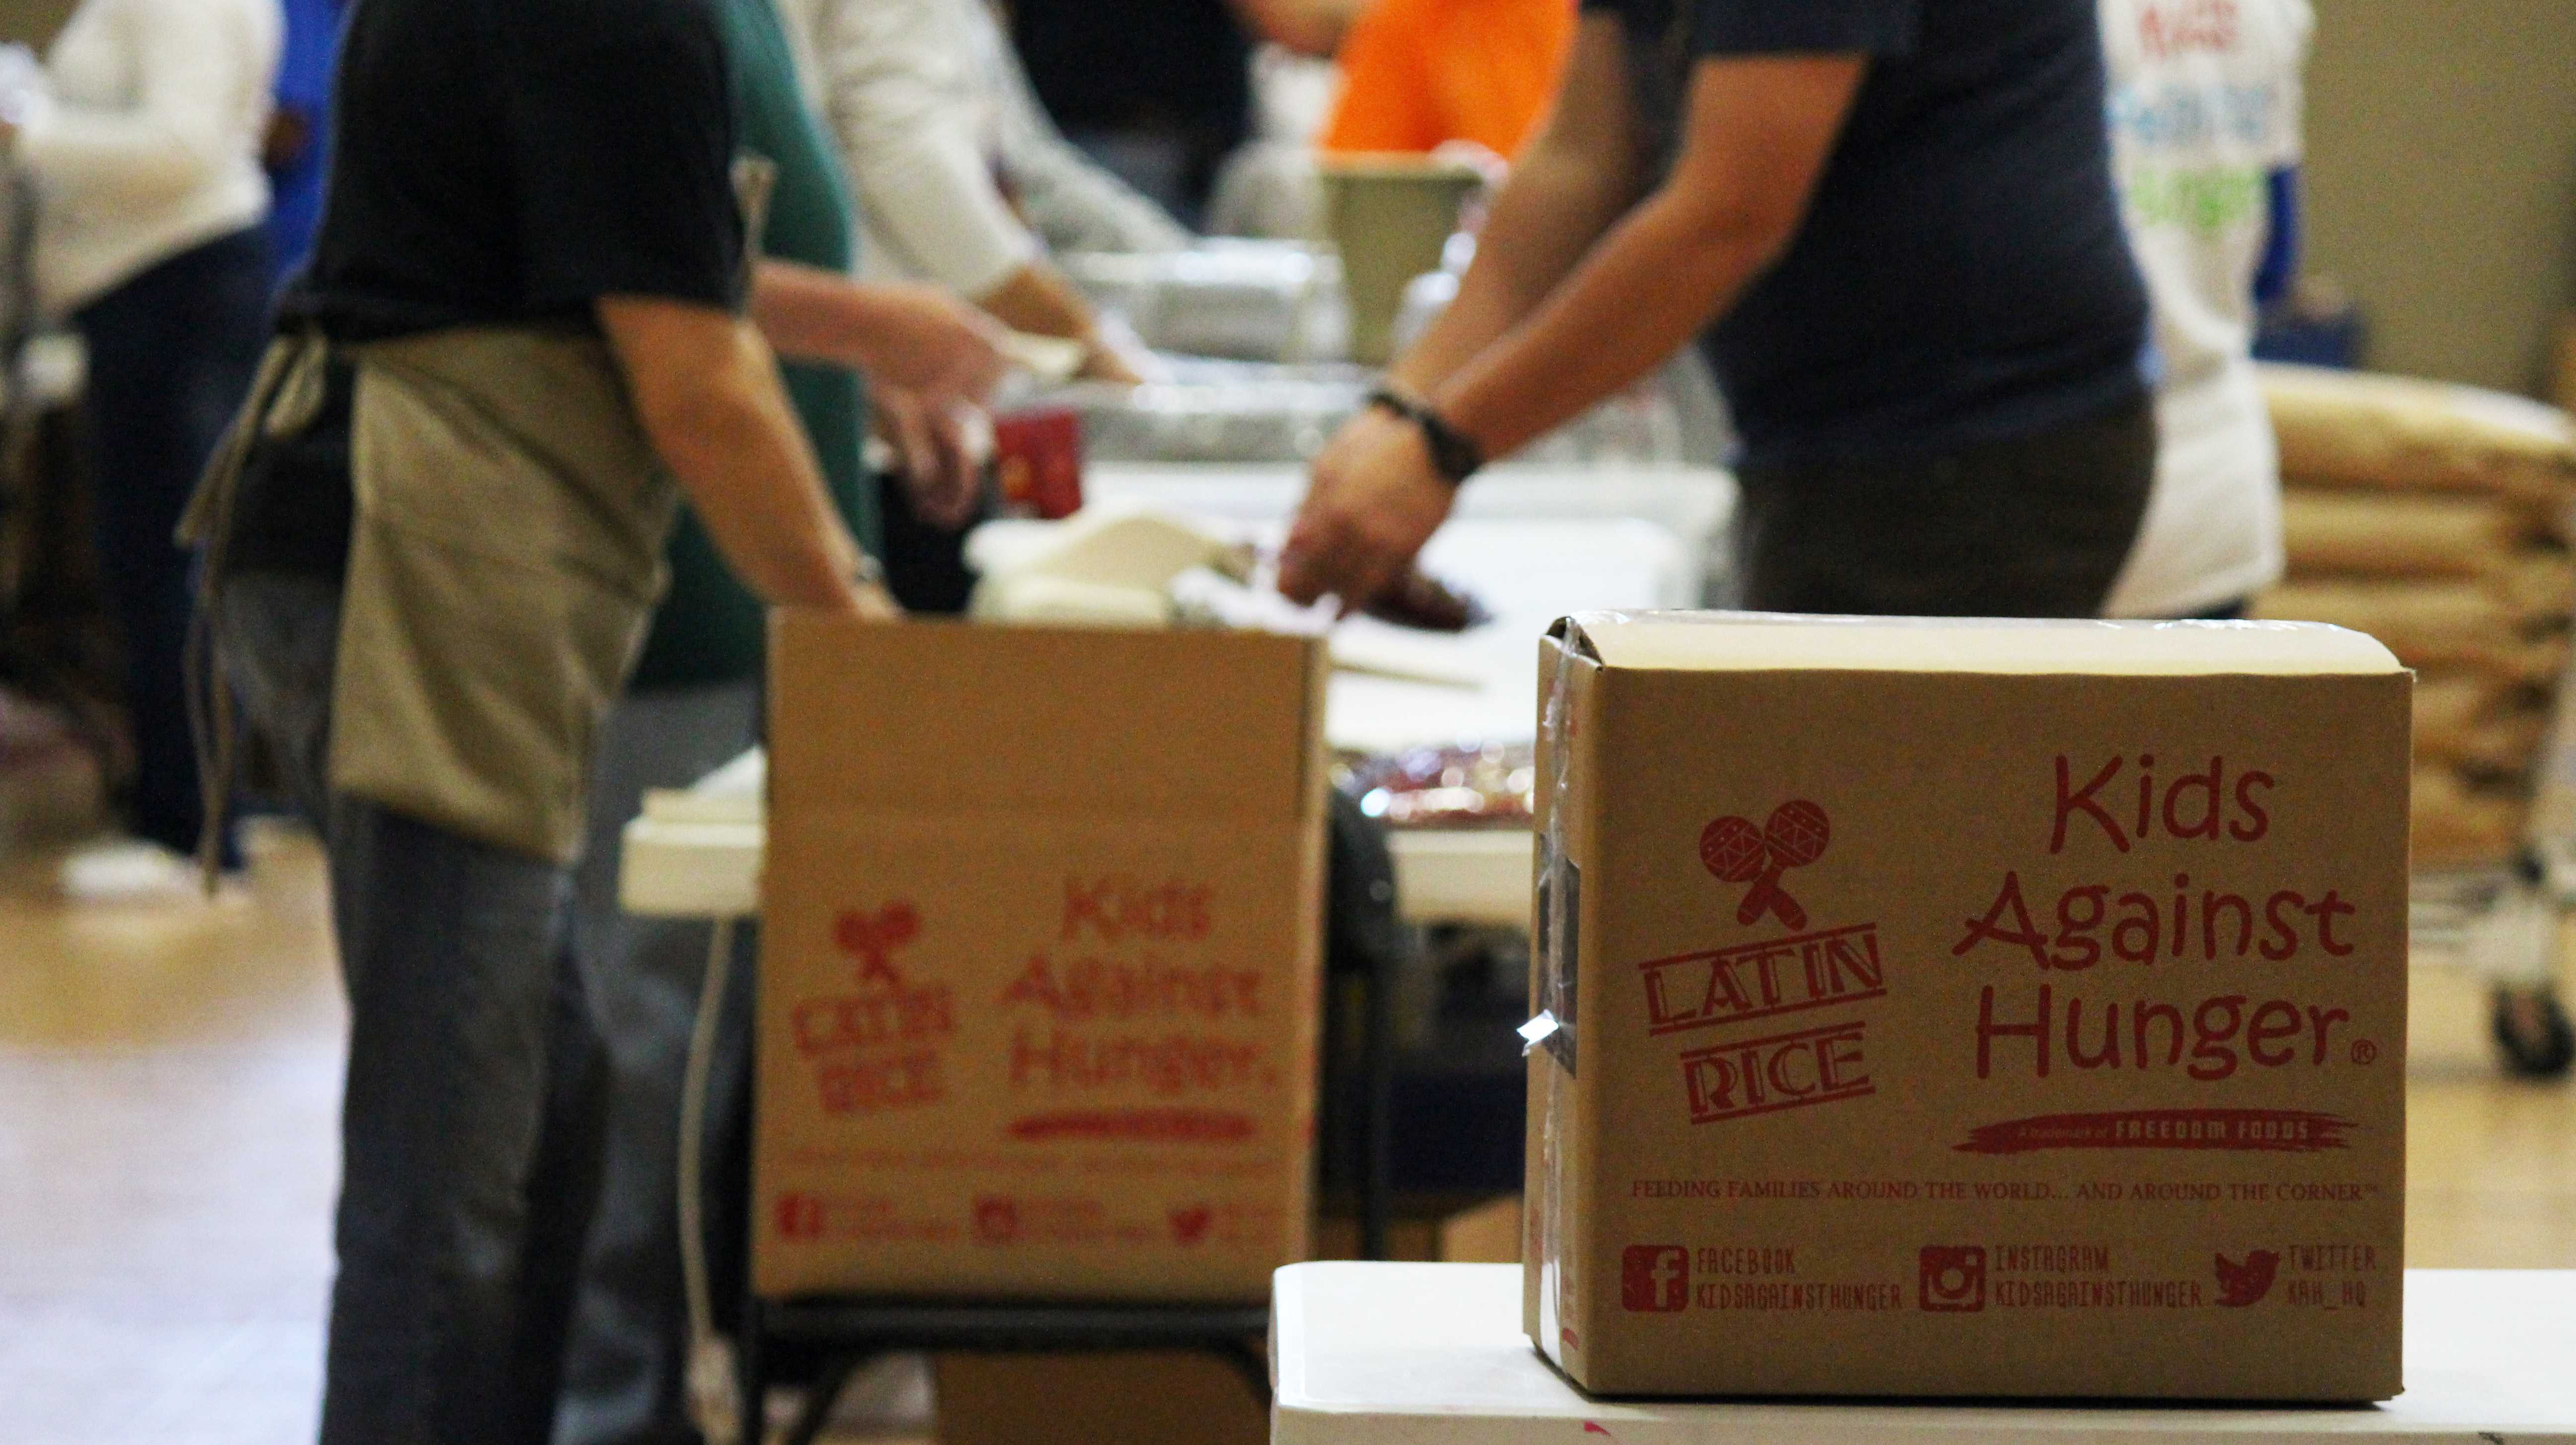 Volunteers are packing meals for children in need both locally and overseas. Kids Against Hunger organizers are planning to pack thousands of meals consisting of rice, soy and more this weekend. Photo by Kyle Rainey